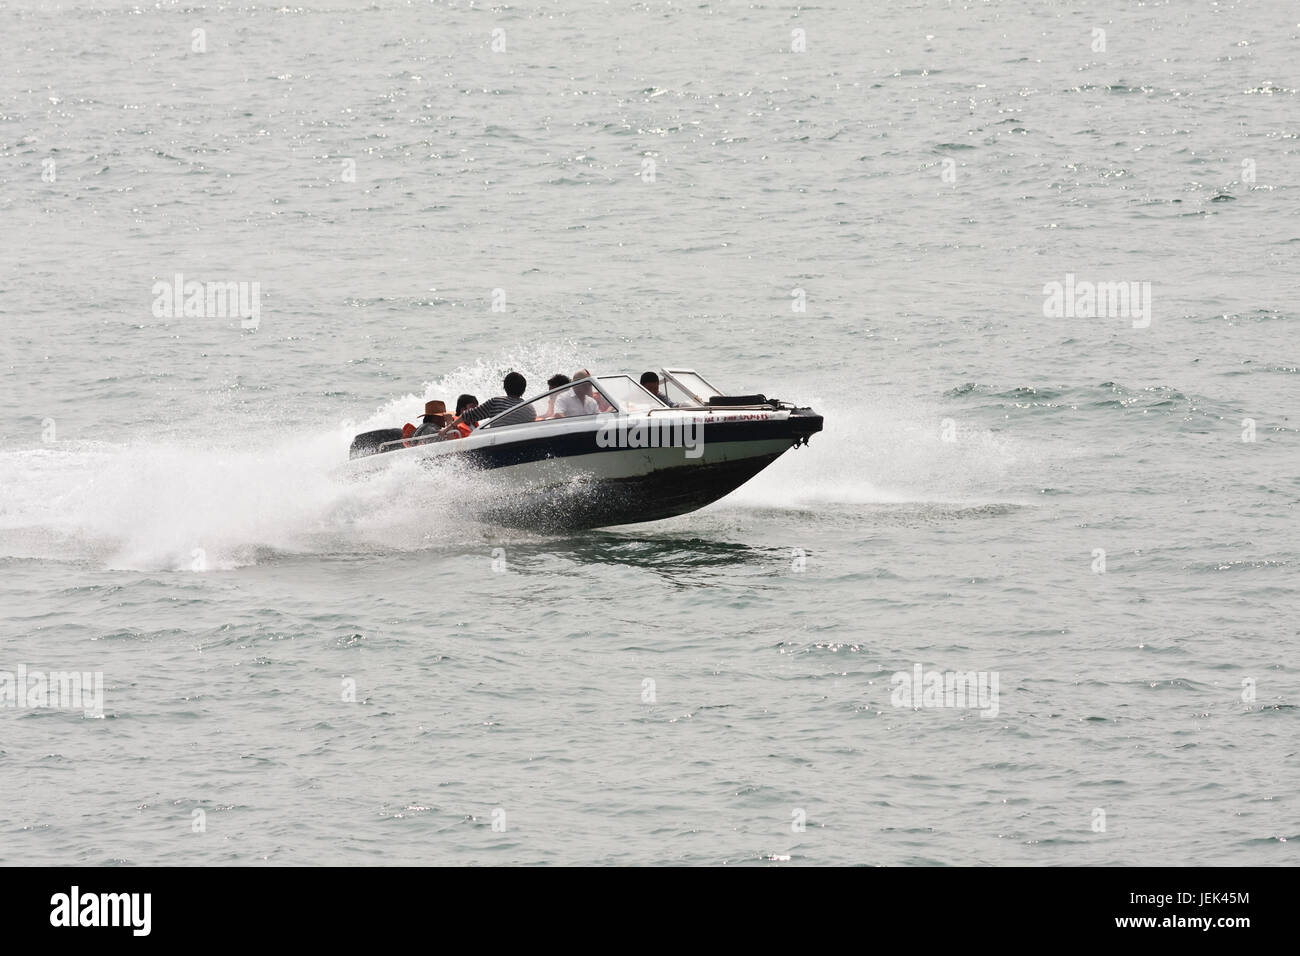 Fastest Boat Stock Photos & Fastest Boat Stock Images - Page